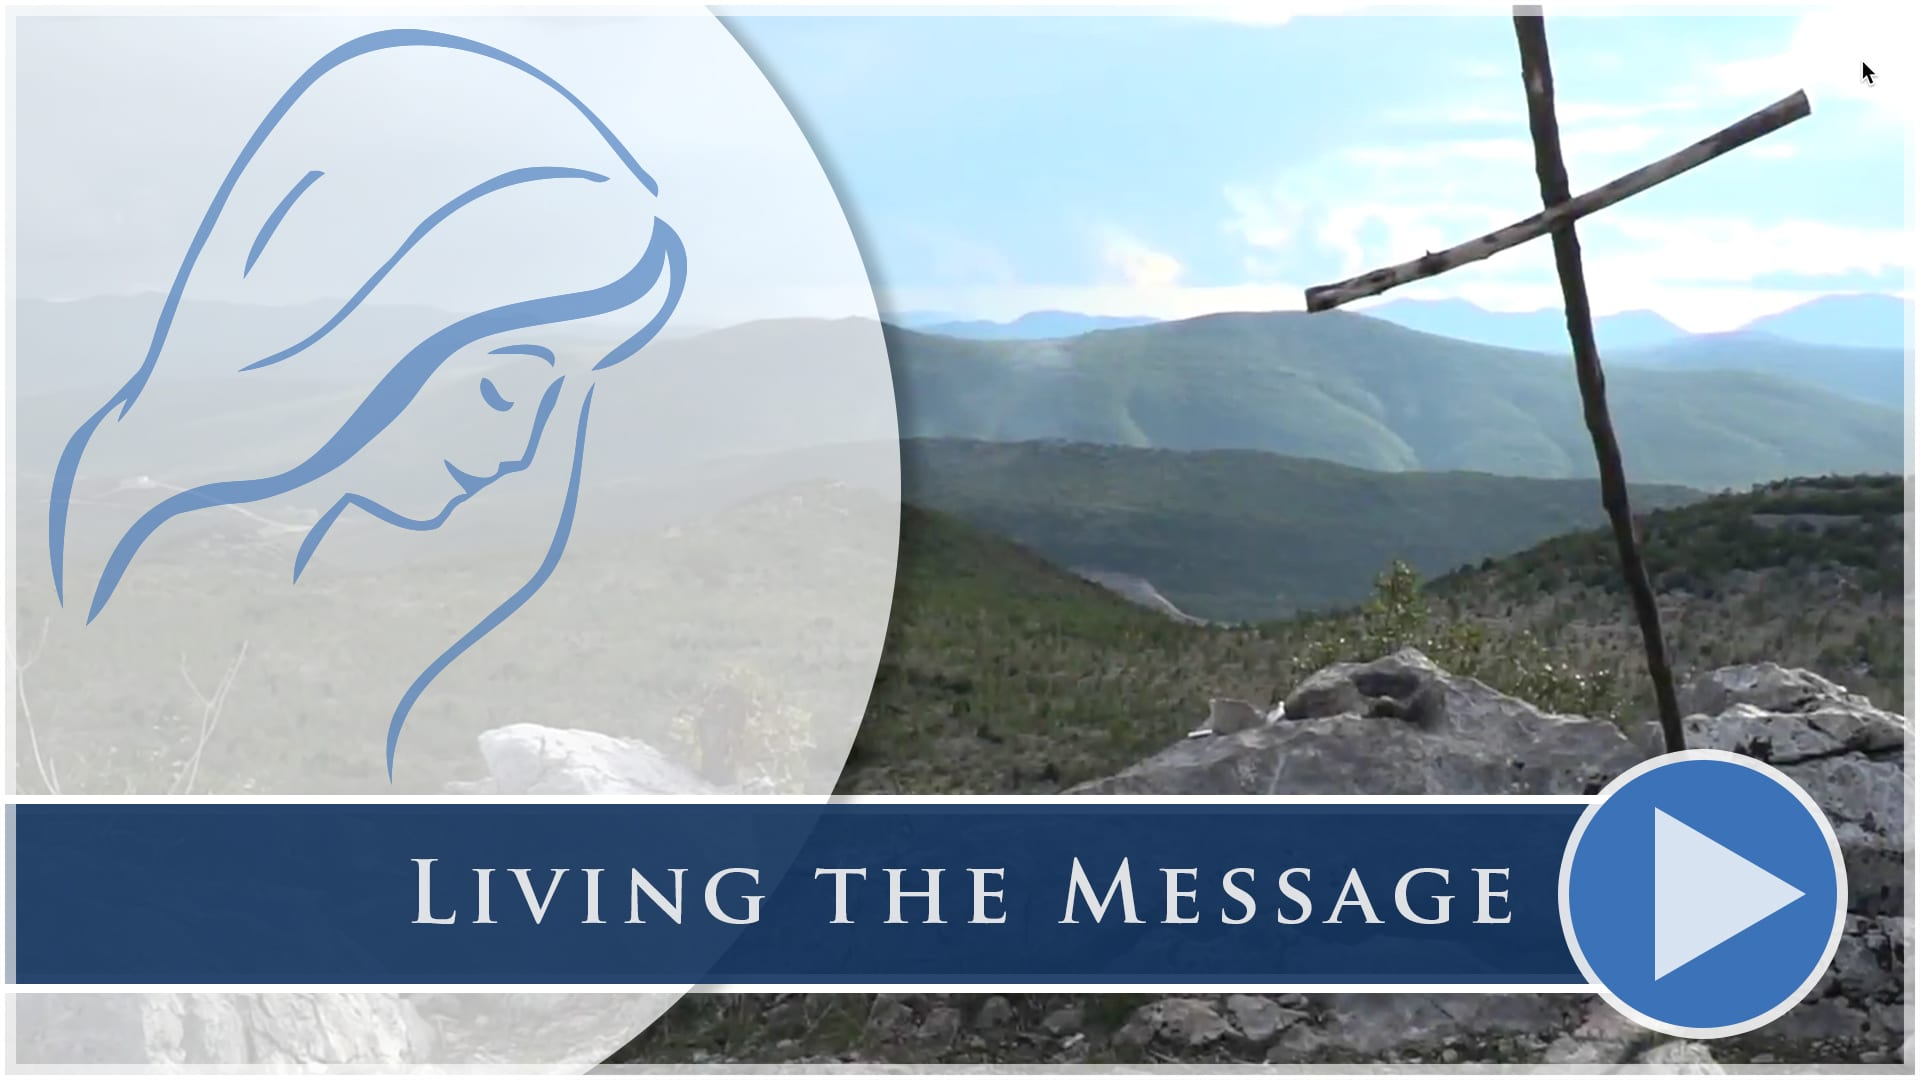 Living the Message in Medjugorje